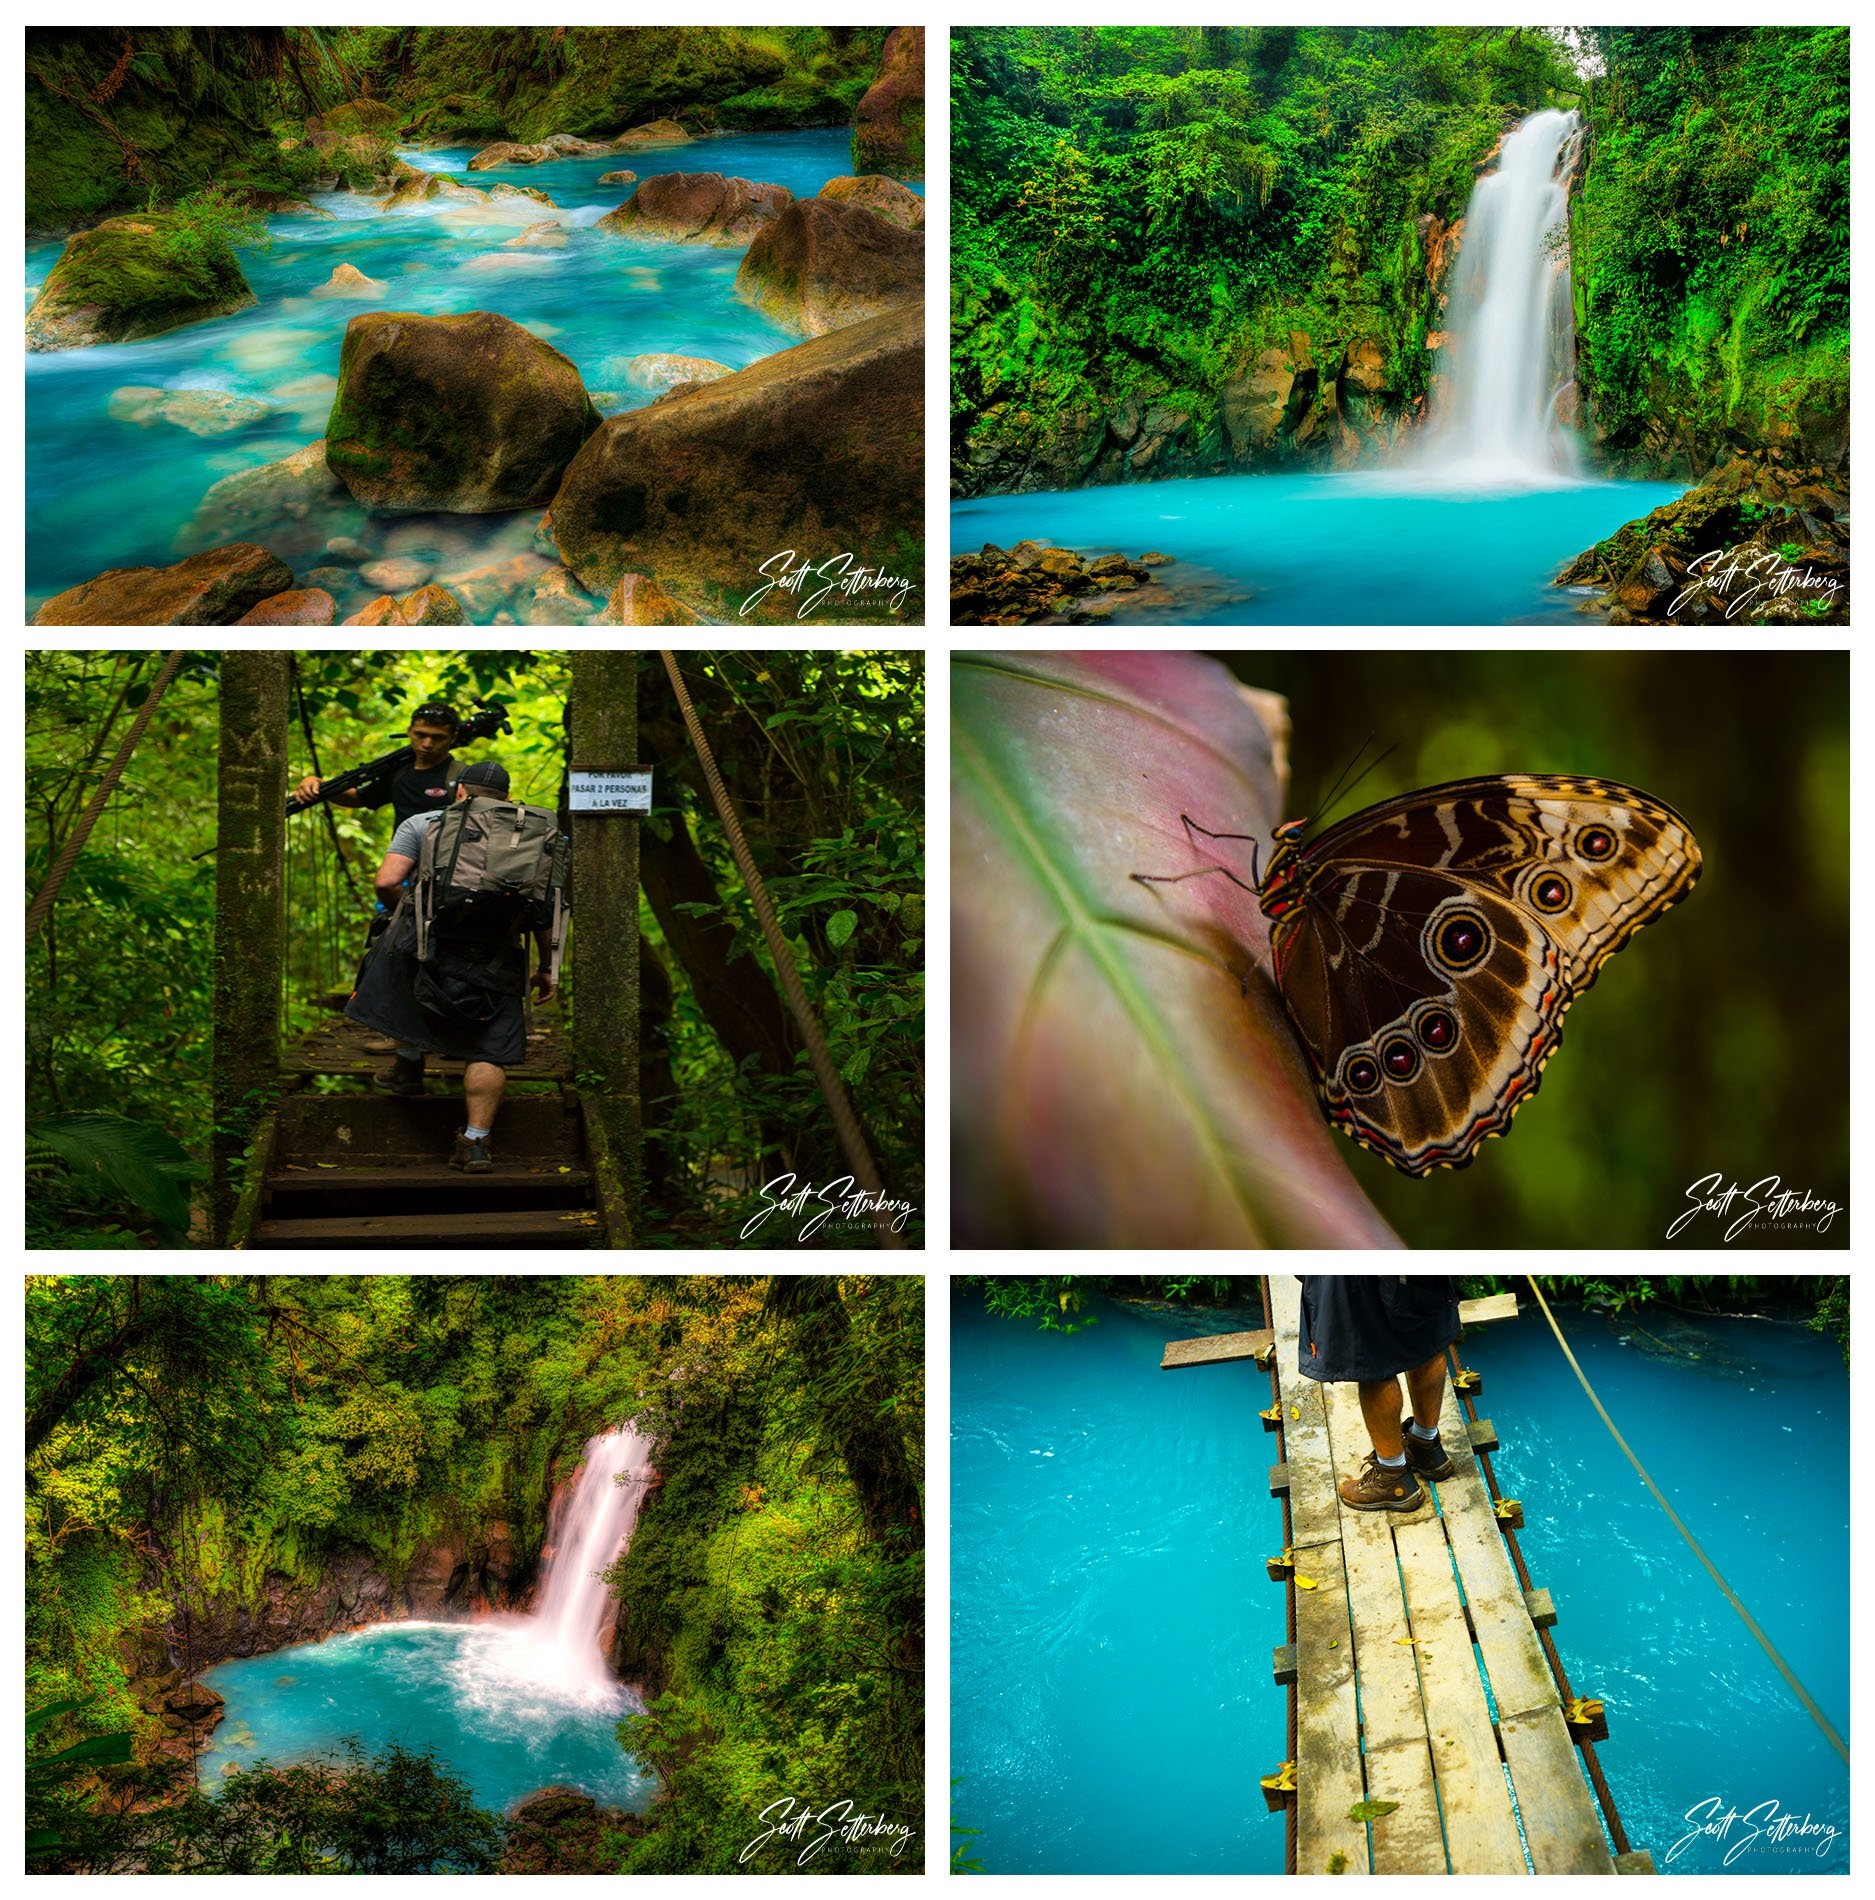 costa rica photography tips 3 image